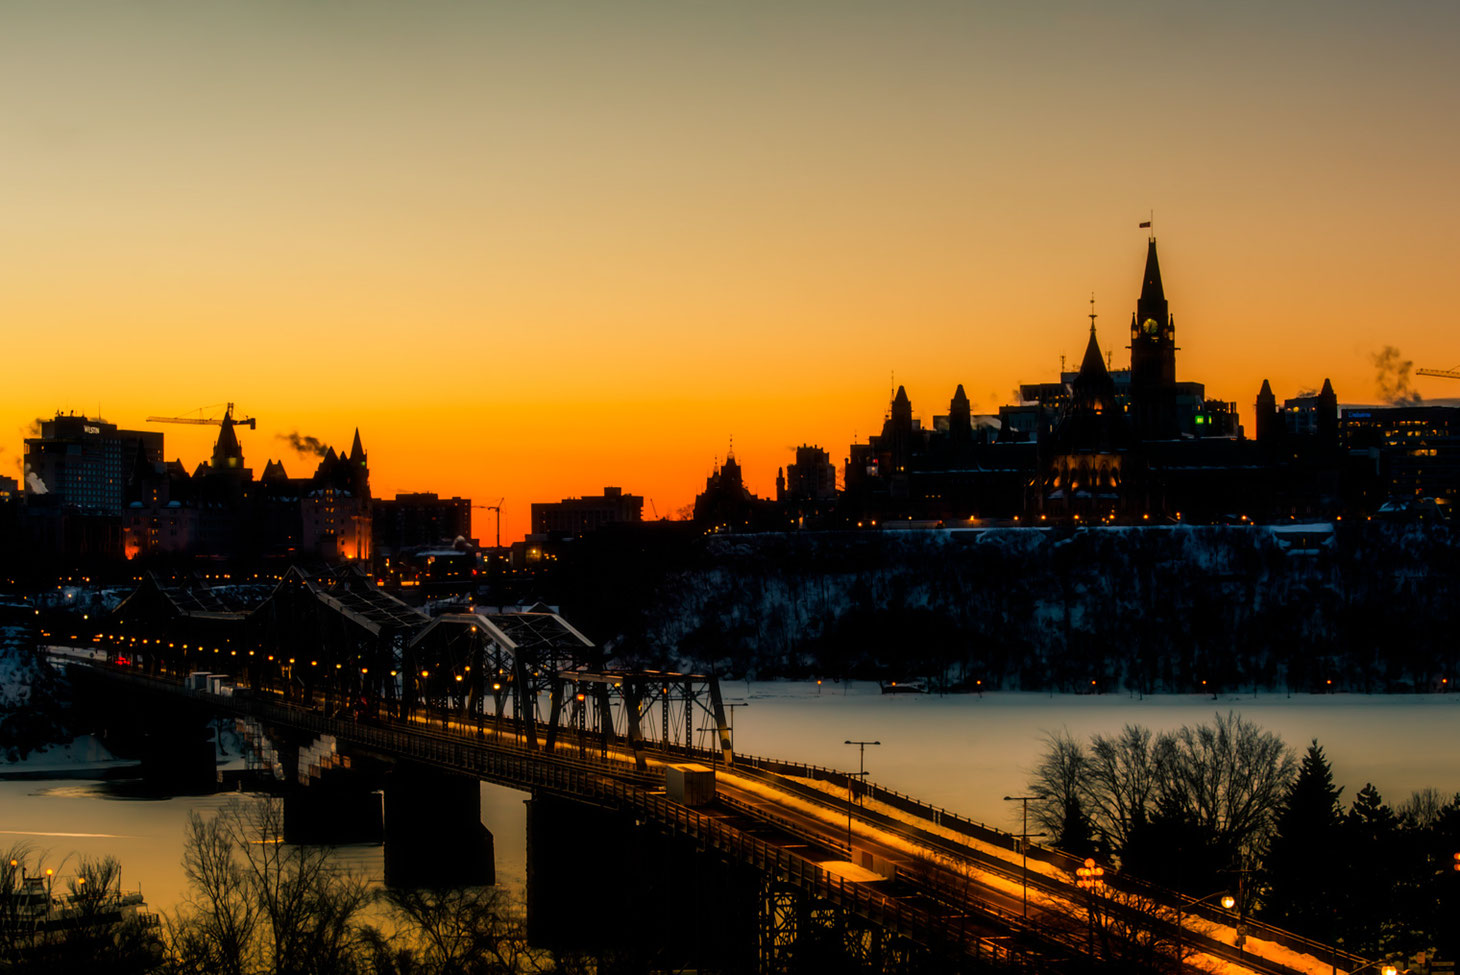 Photo of Ottawa parliament taken at sunrise from Gatineau Quebec. Chateau Laurier and bridge between Ontario and Quebec are also visible. River under bridge is frozen.